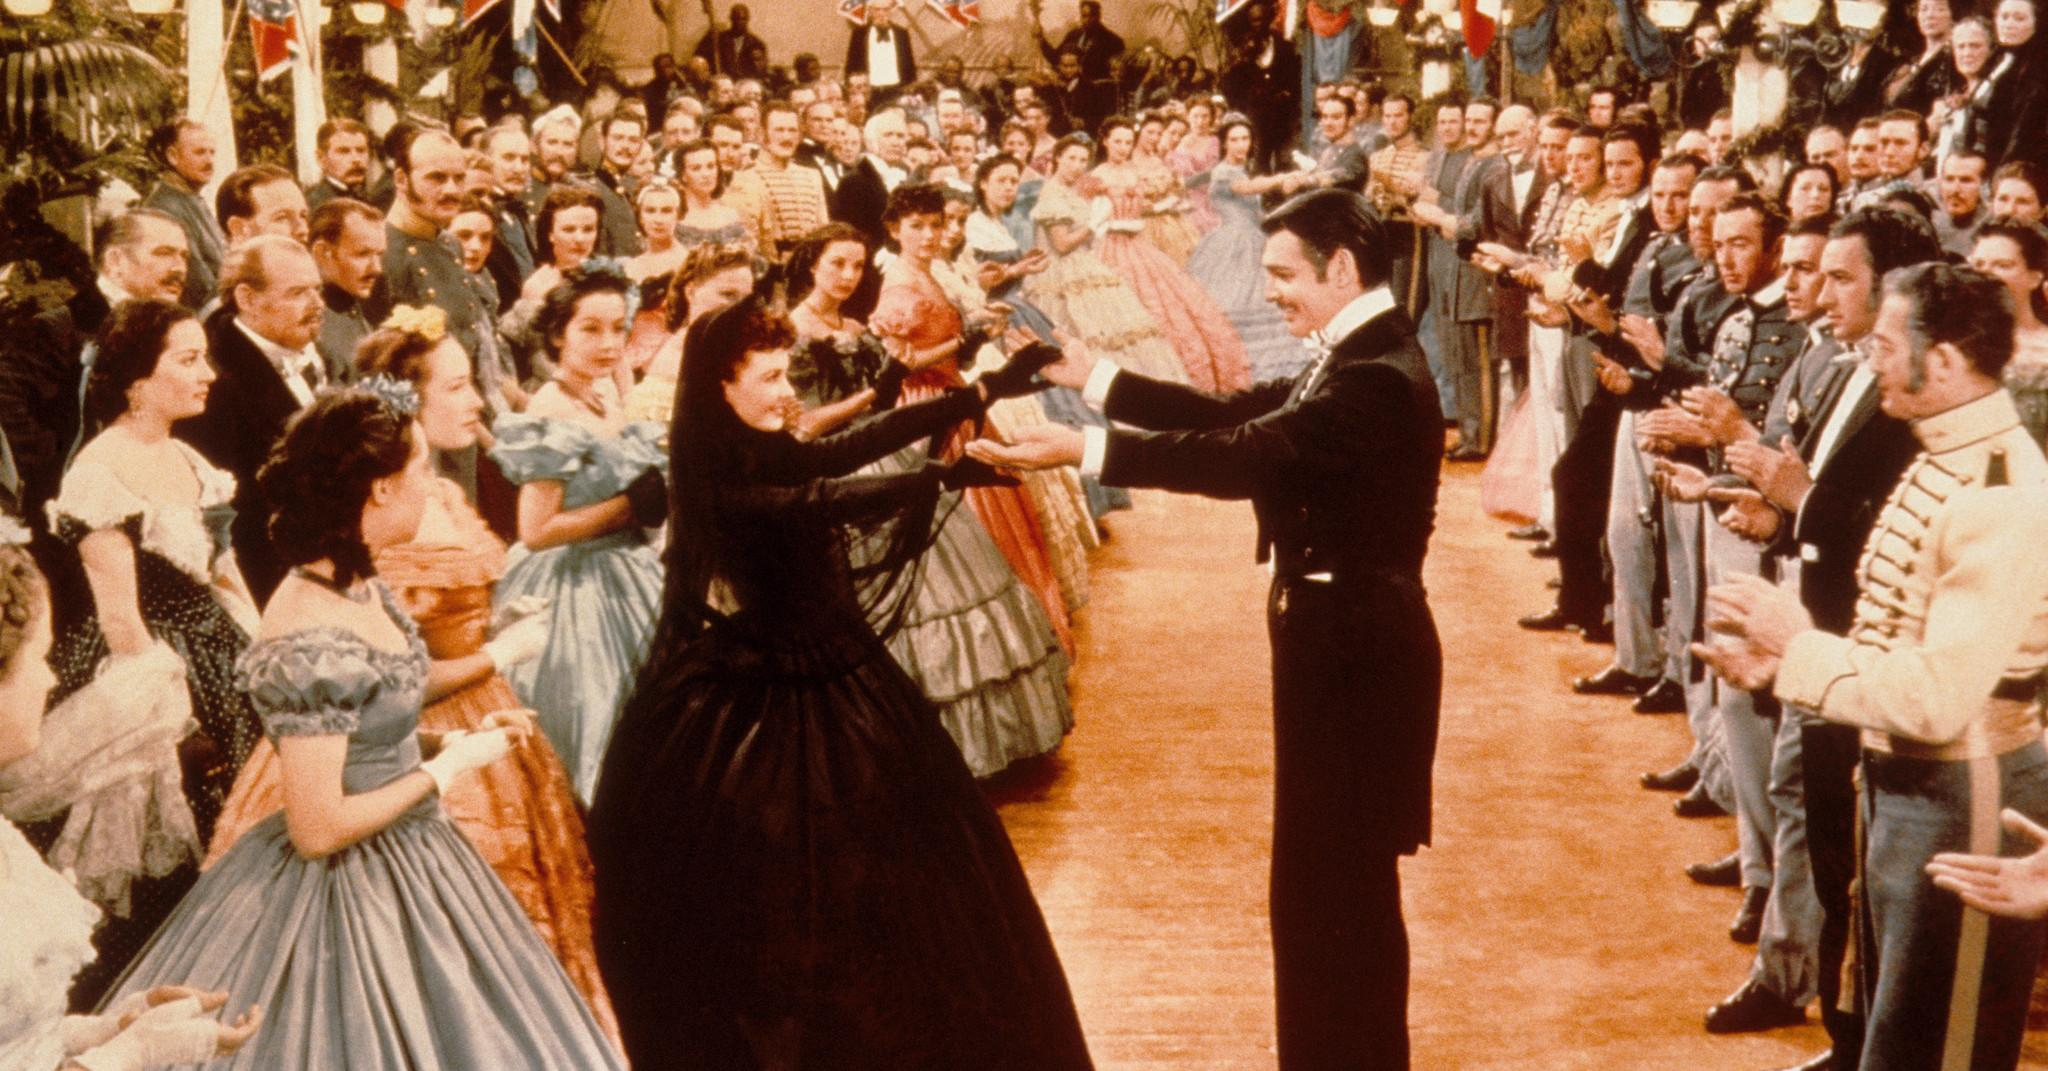 My favorite movie of all time - Gone With the Wind.